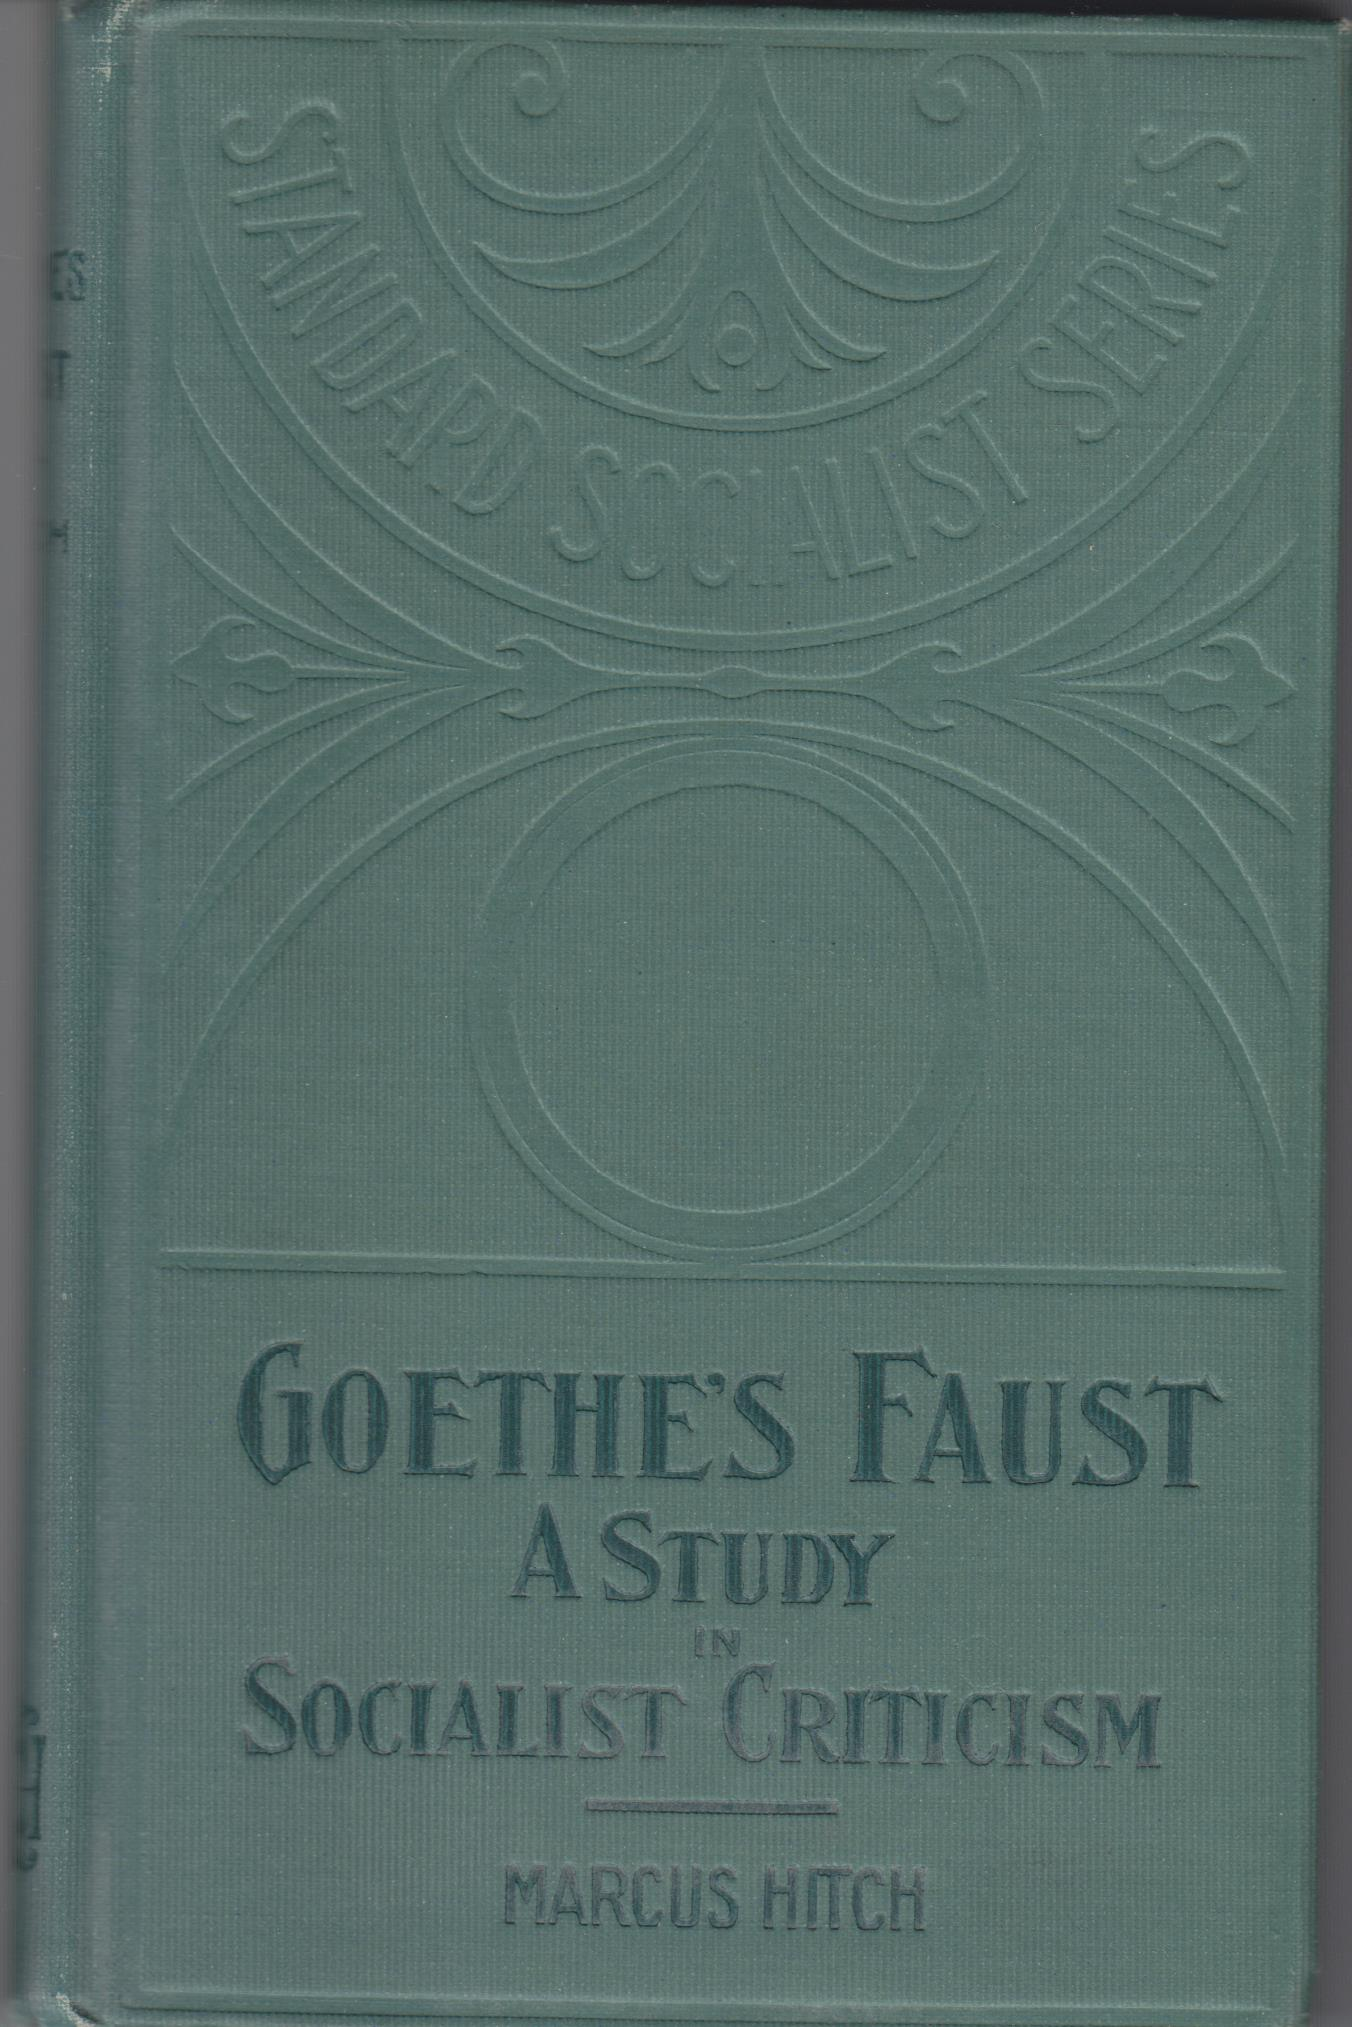 Image for Goethe's Faust. A Fragment of Socialist Criticism